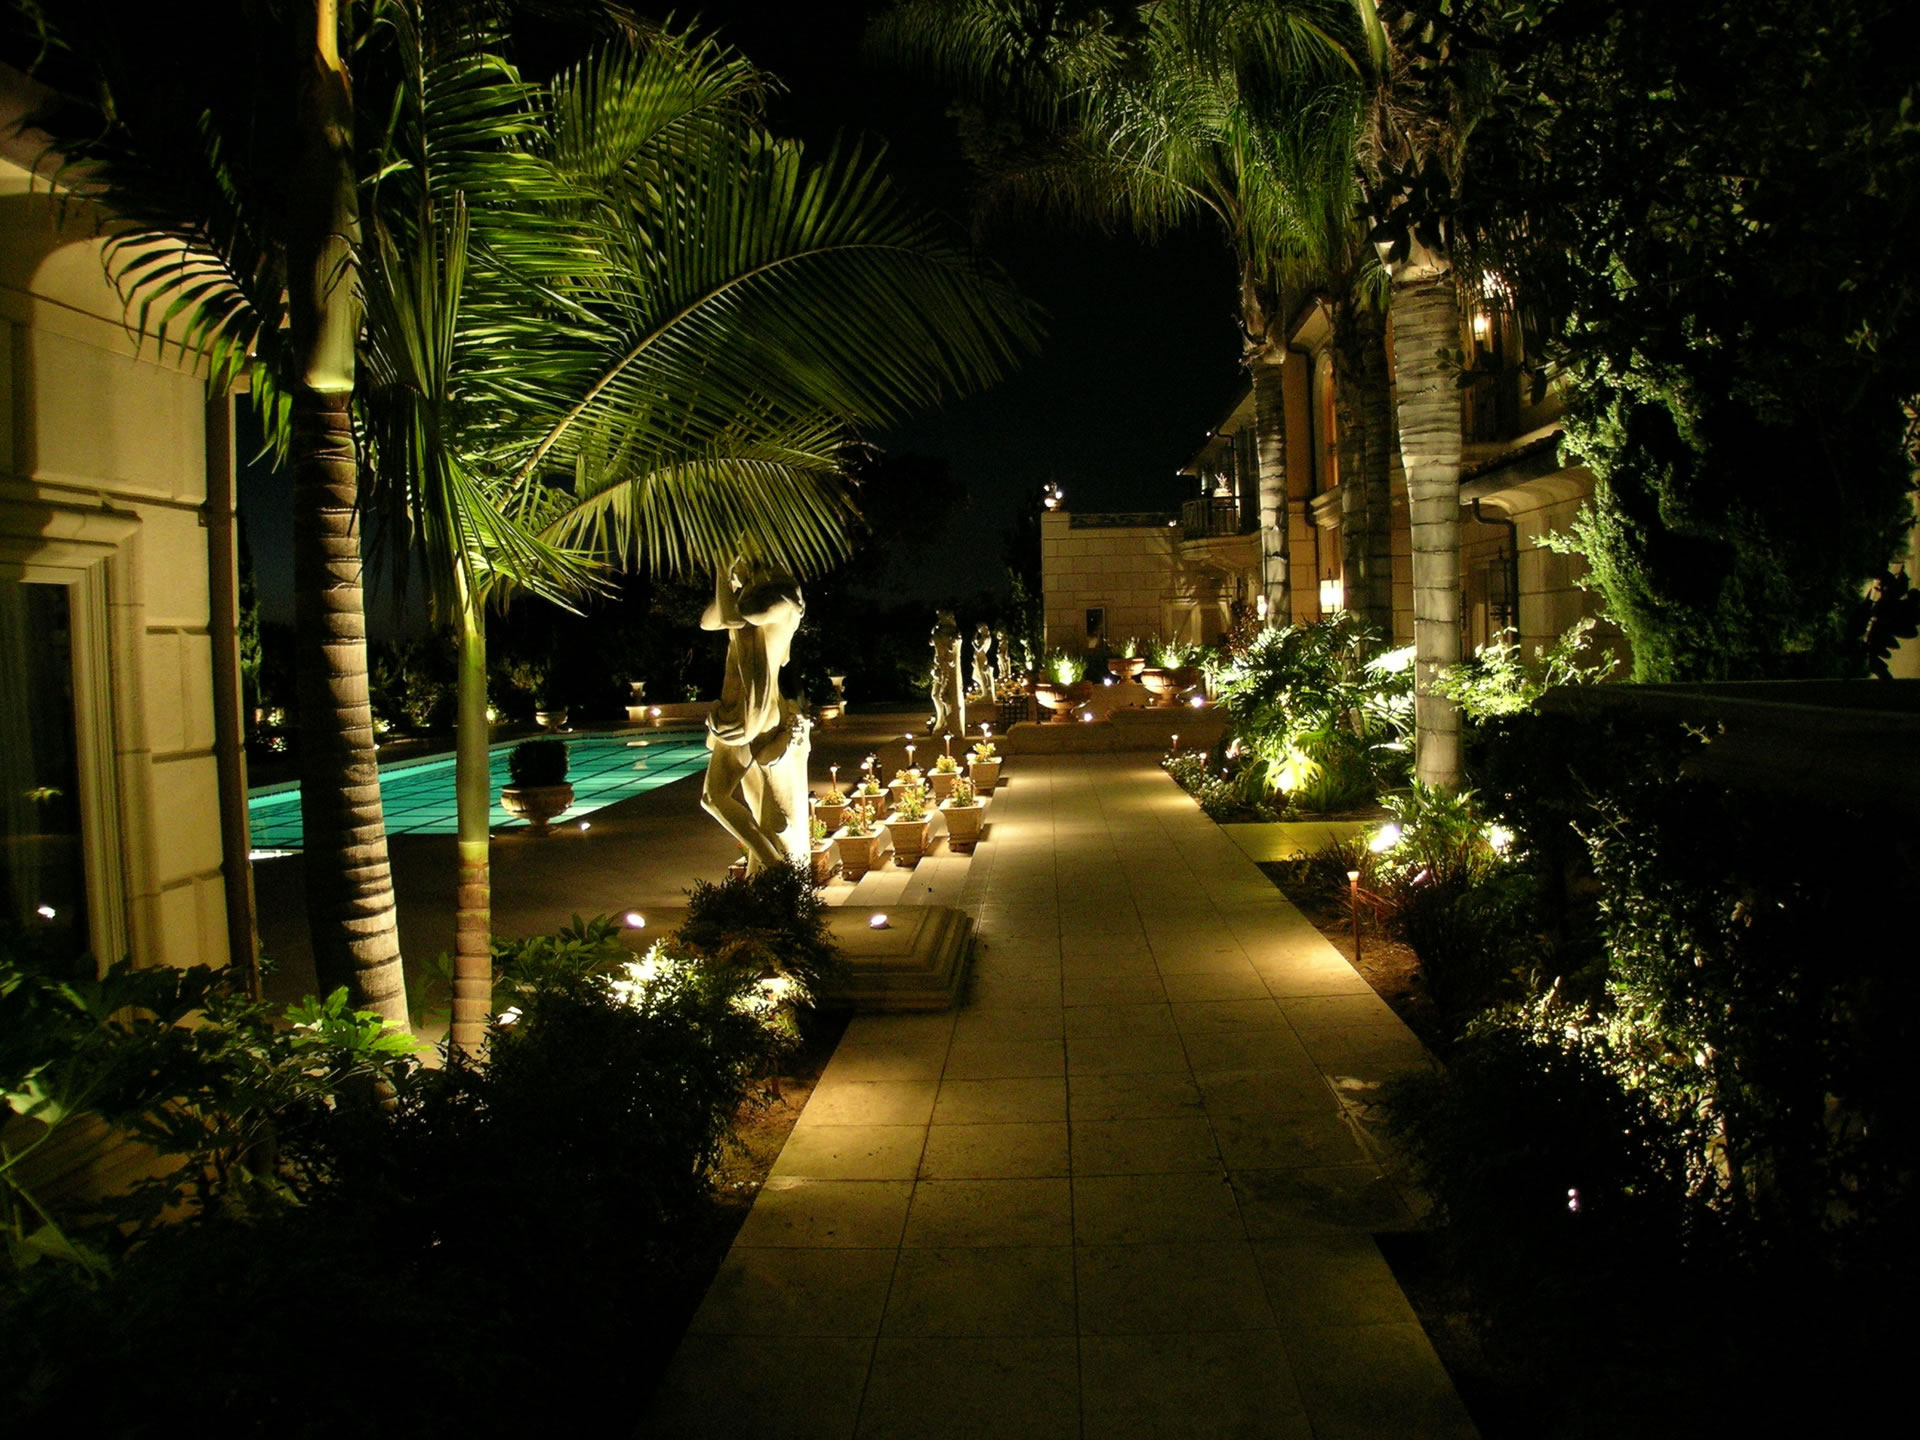 Santa Fe Landscape Lighting By Artistic Illumination